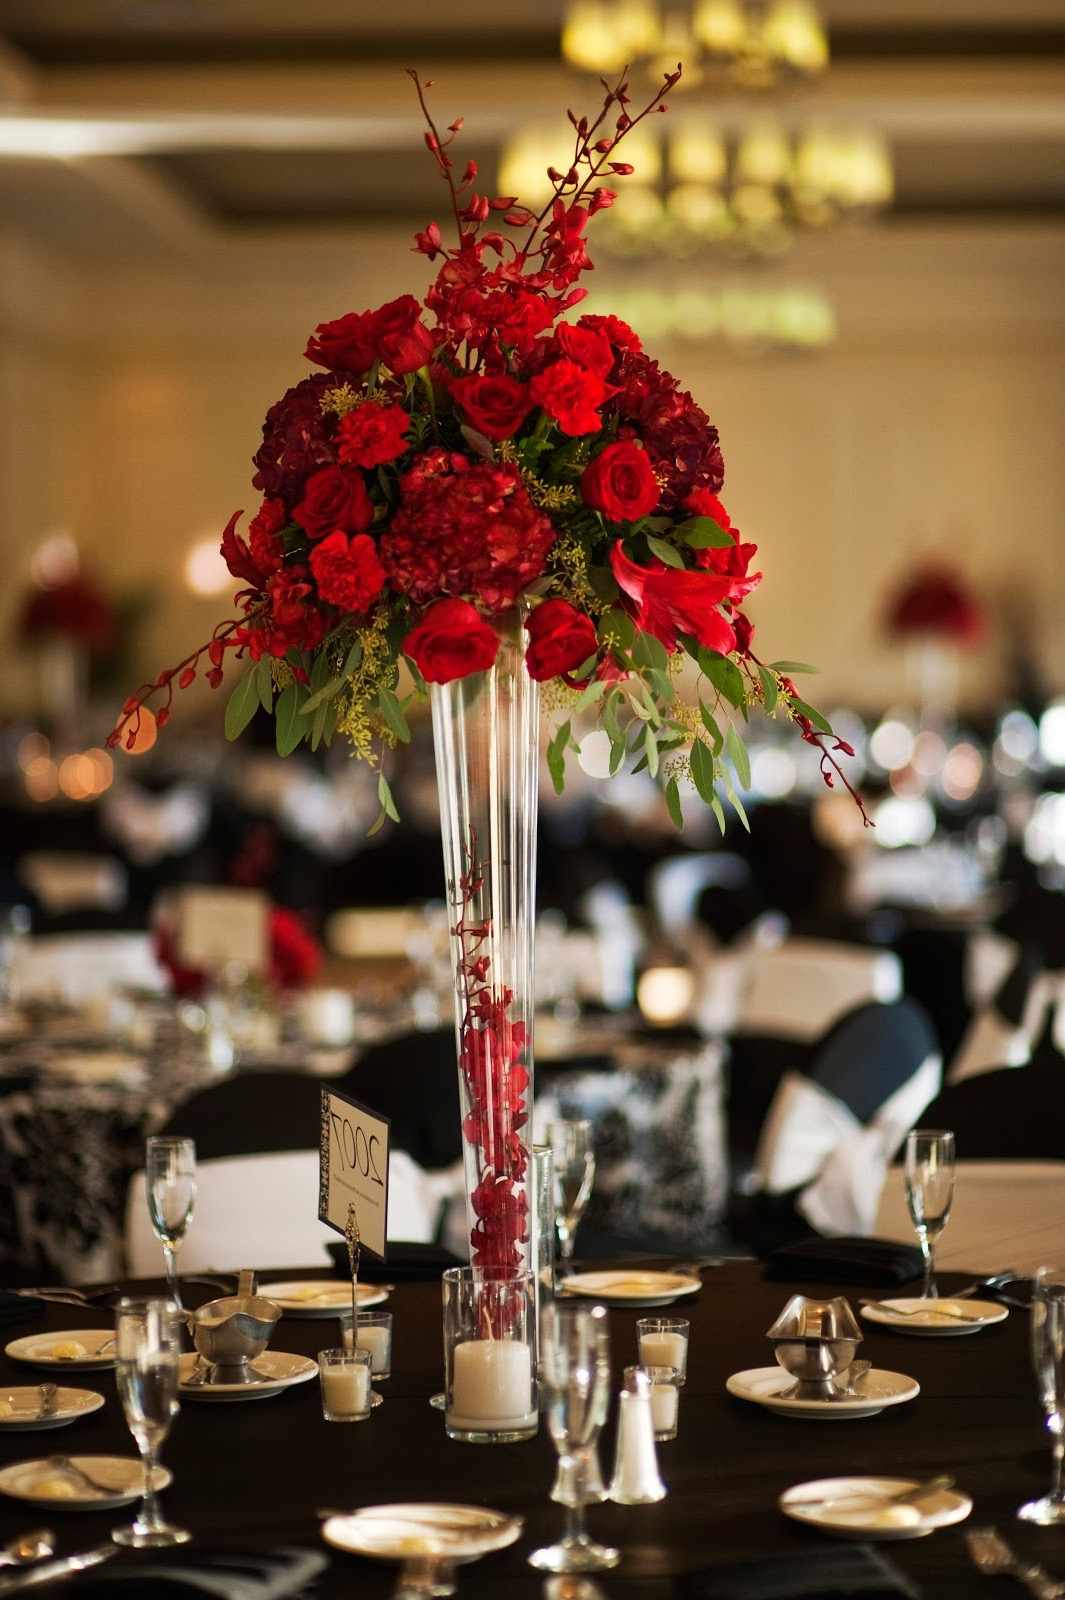 Red Roses Centerpieces For Round Table Weddings (Image 11 of 15)